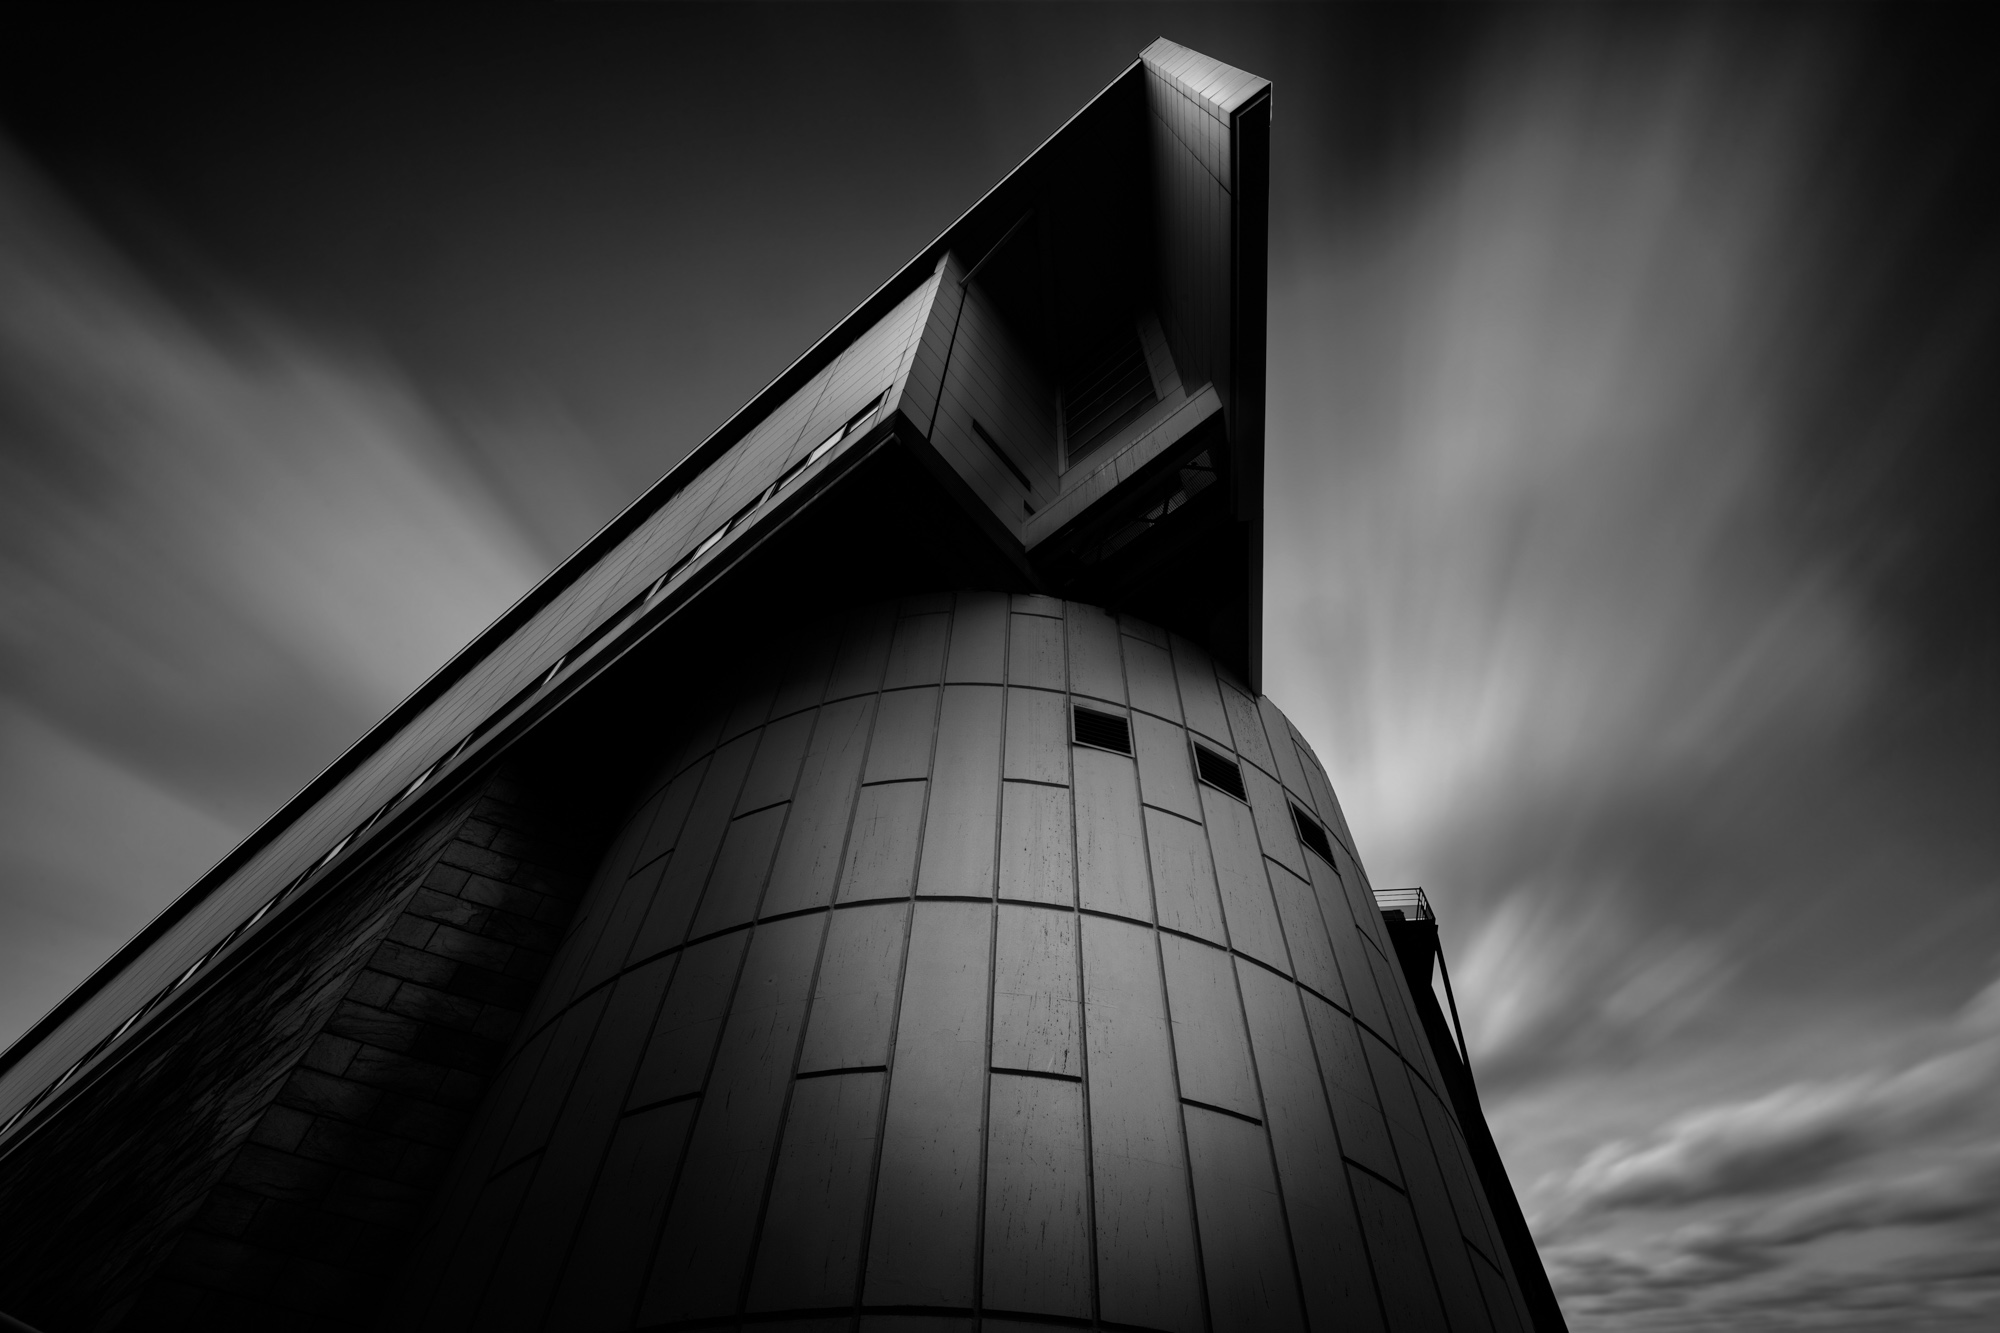 antonyz long exposure architecture photograph of a modern glass triangular office building